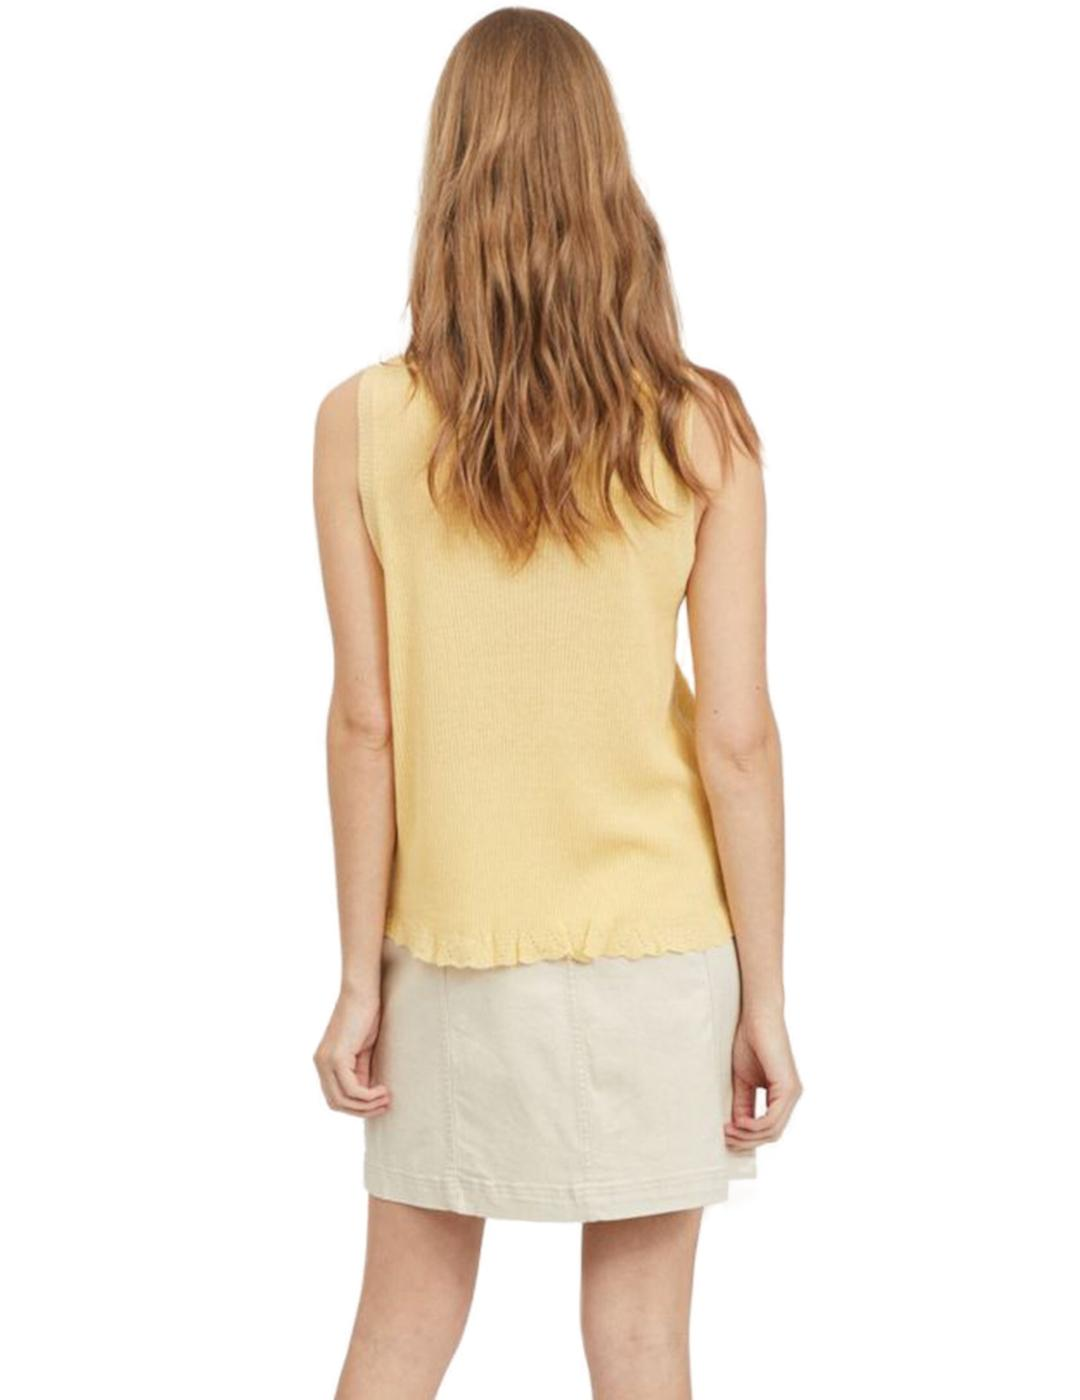 VIWOLA S/L KNIT TOP SUNLIGHT-Y